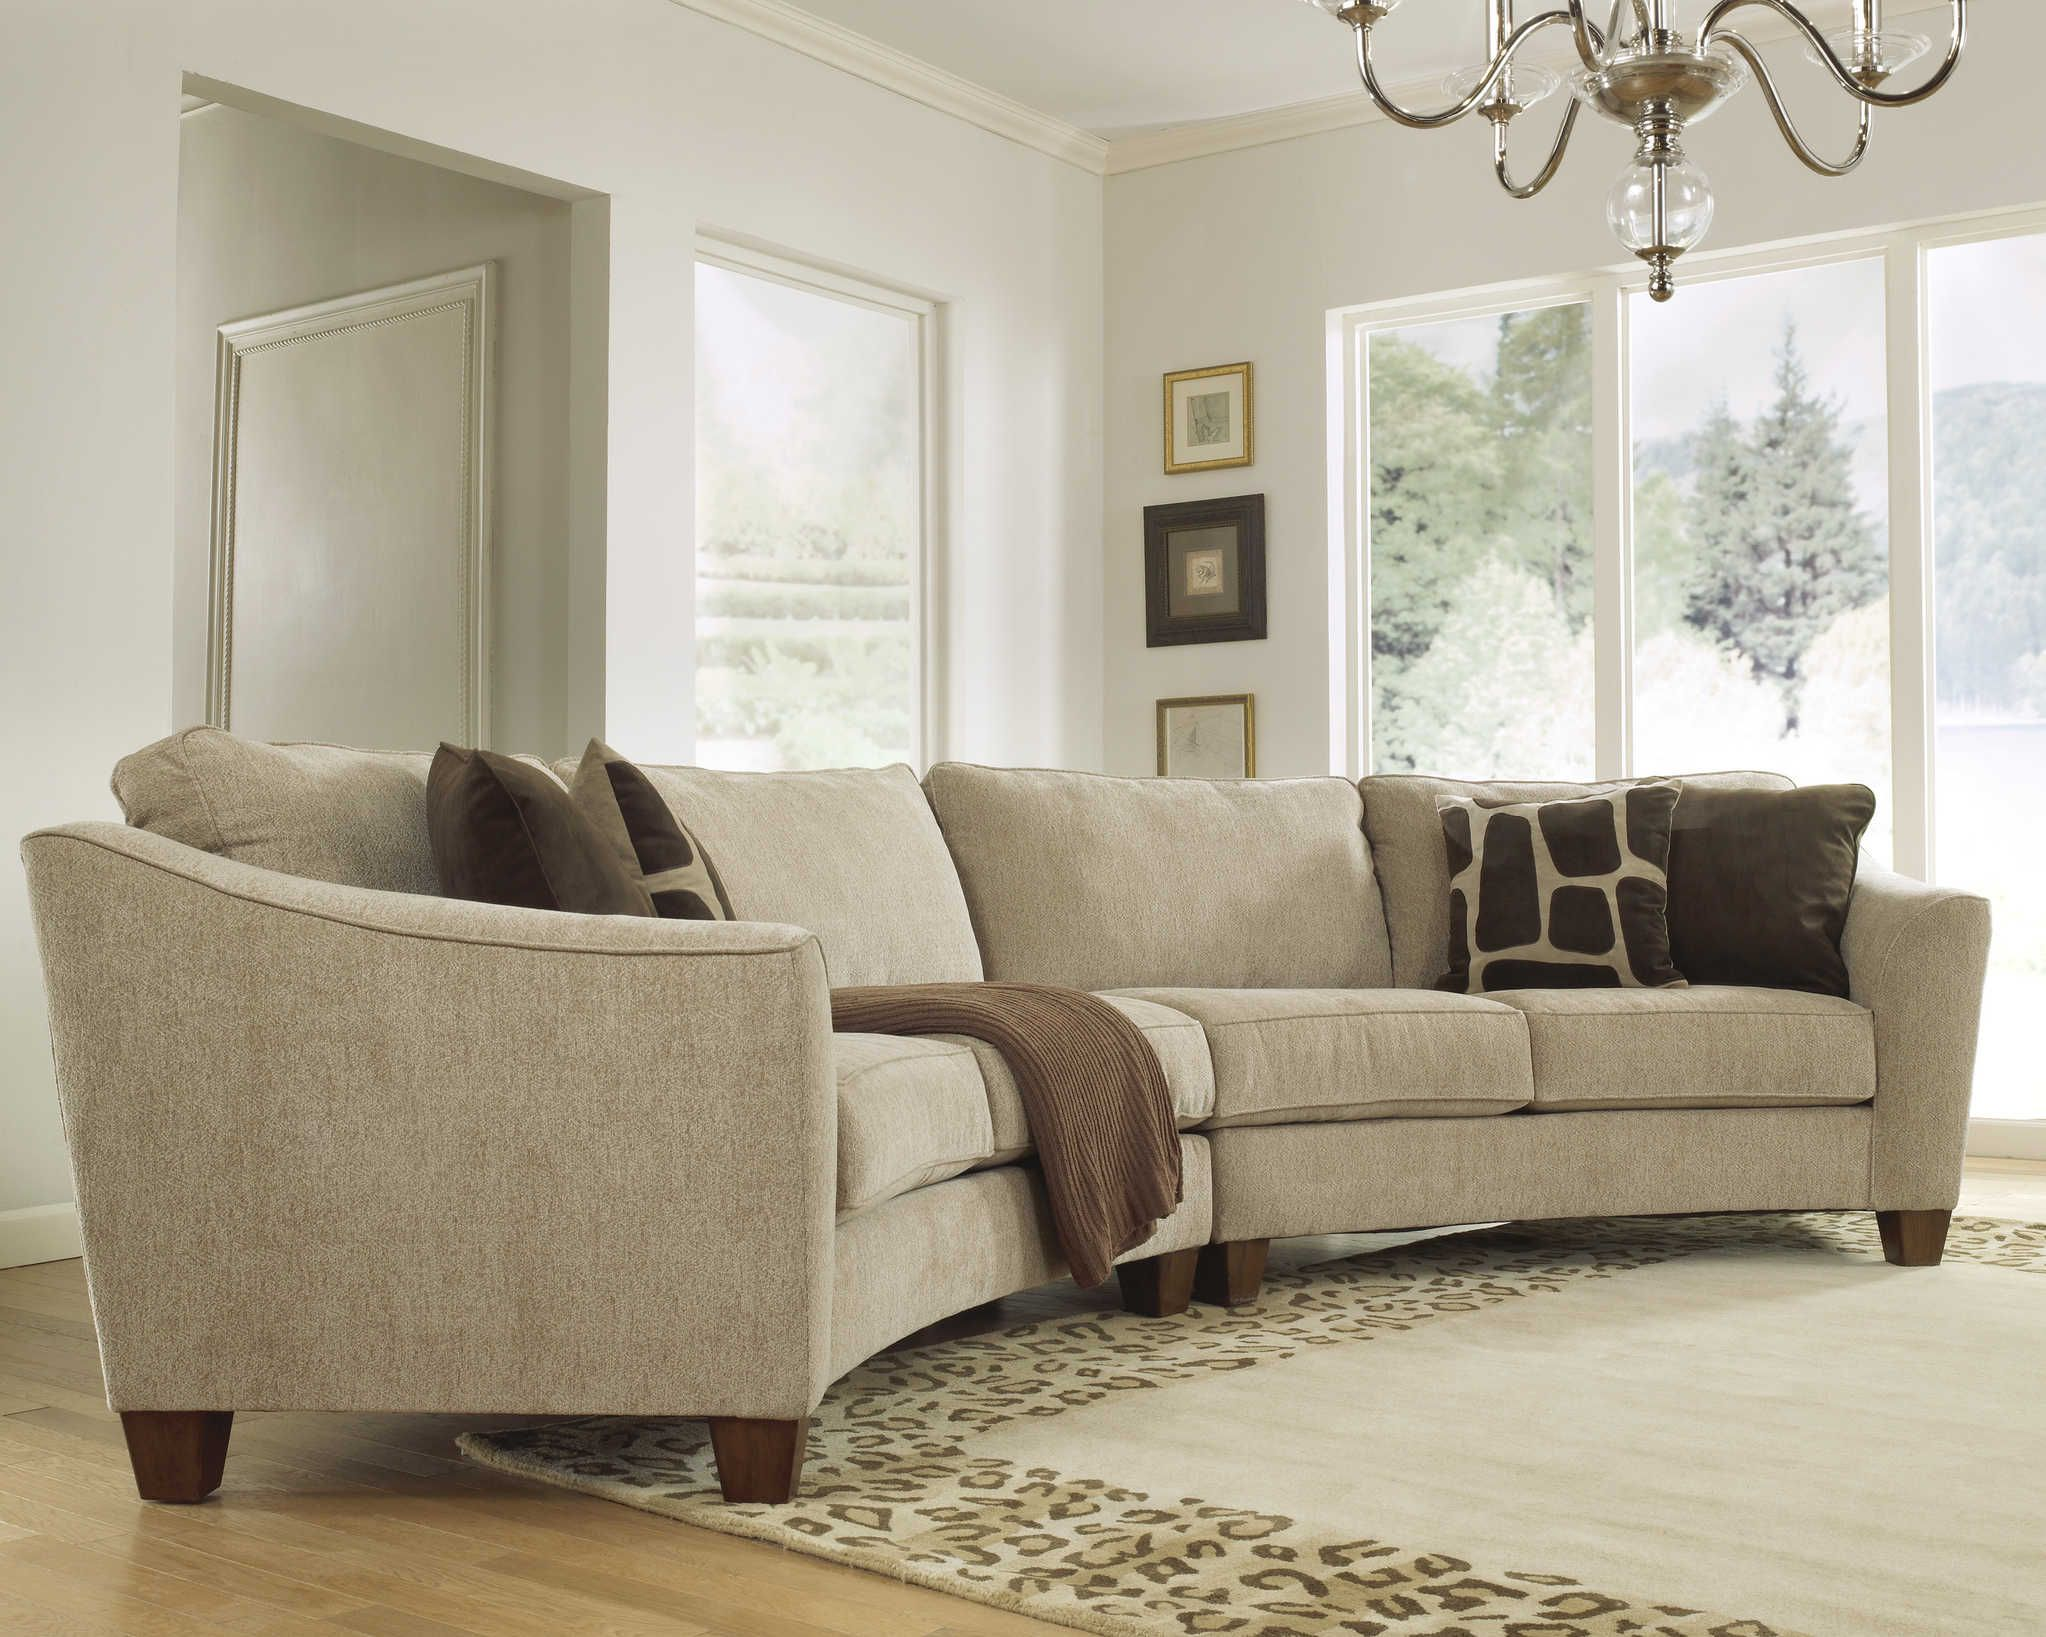 Curved Sectional Sofa Set   Rich Comfortable Upholstered Fabric    Contemporary Curved Sofa 2959